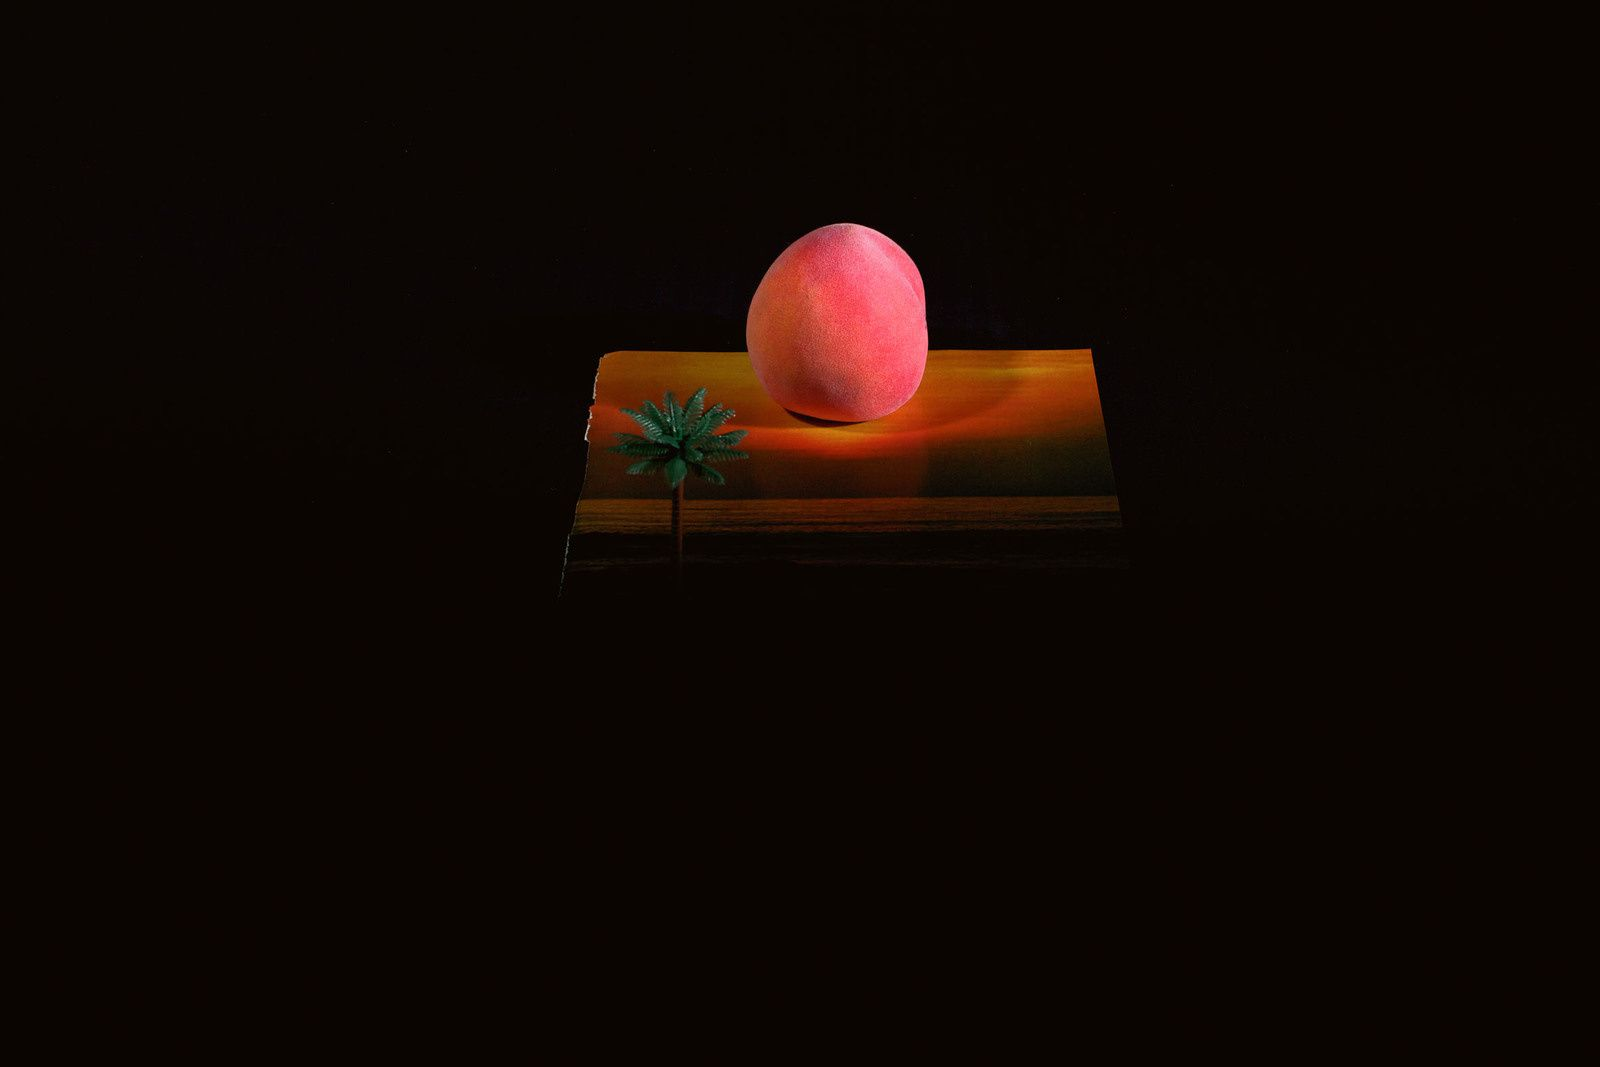 Friedrich Kunath, Untitled (Peach Sunset), 2011. Tirage couleur, 33.7 x 50.8 cm (éd. 6). Photo : Ben Westoby, Londres. Courtesy Blum & Poe, Los Angeles ; BQ, Berlin ;Andrea Rosen Gallery, New York ; White Cube, Londres.